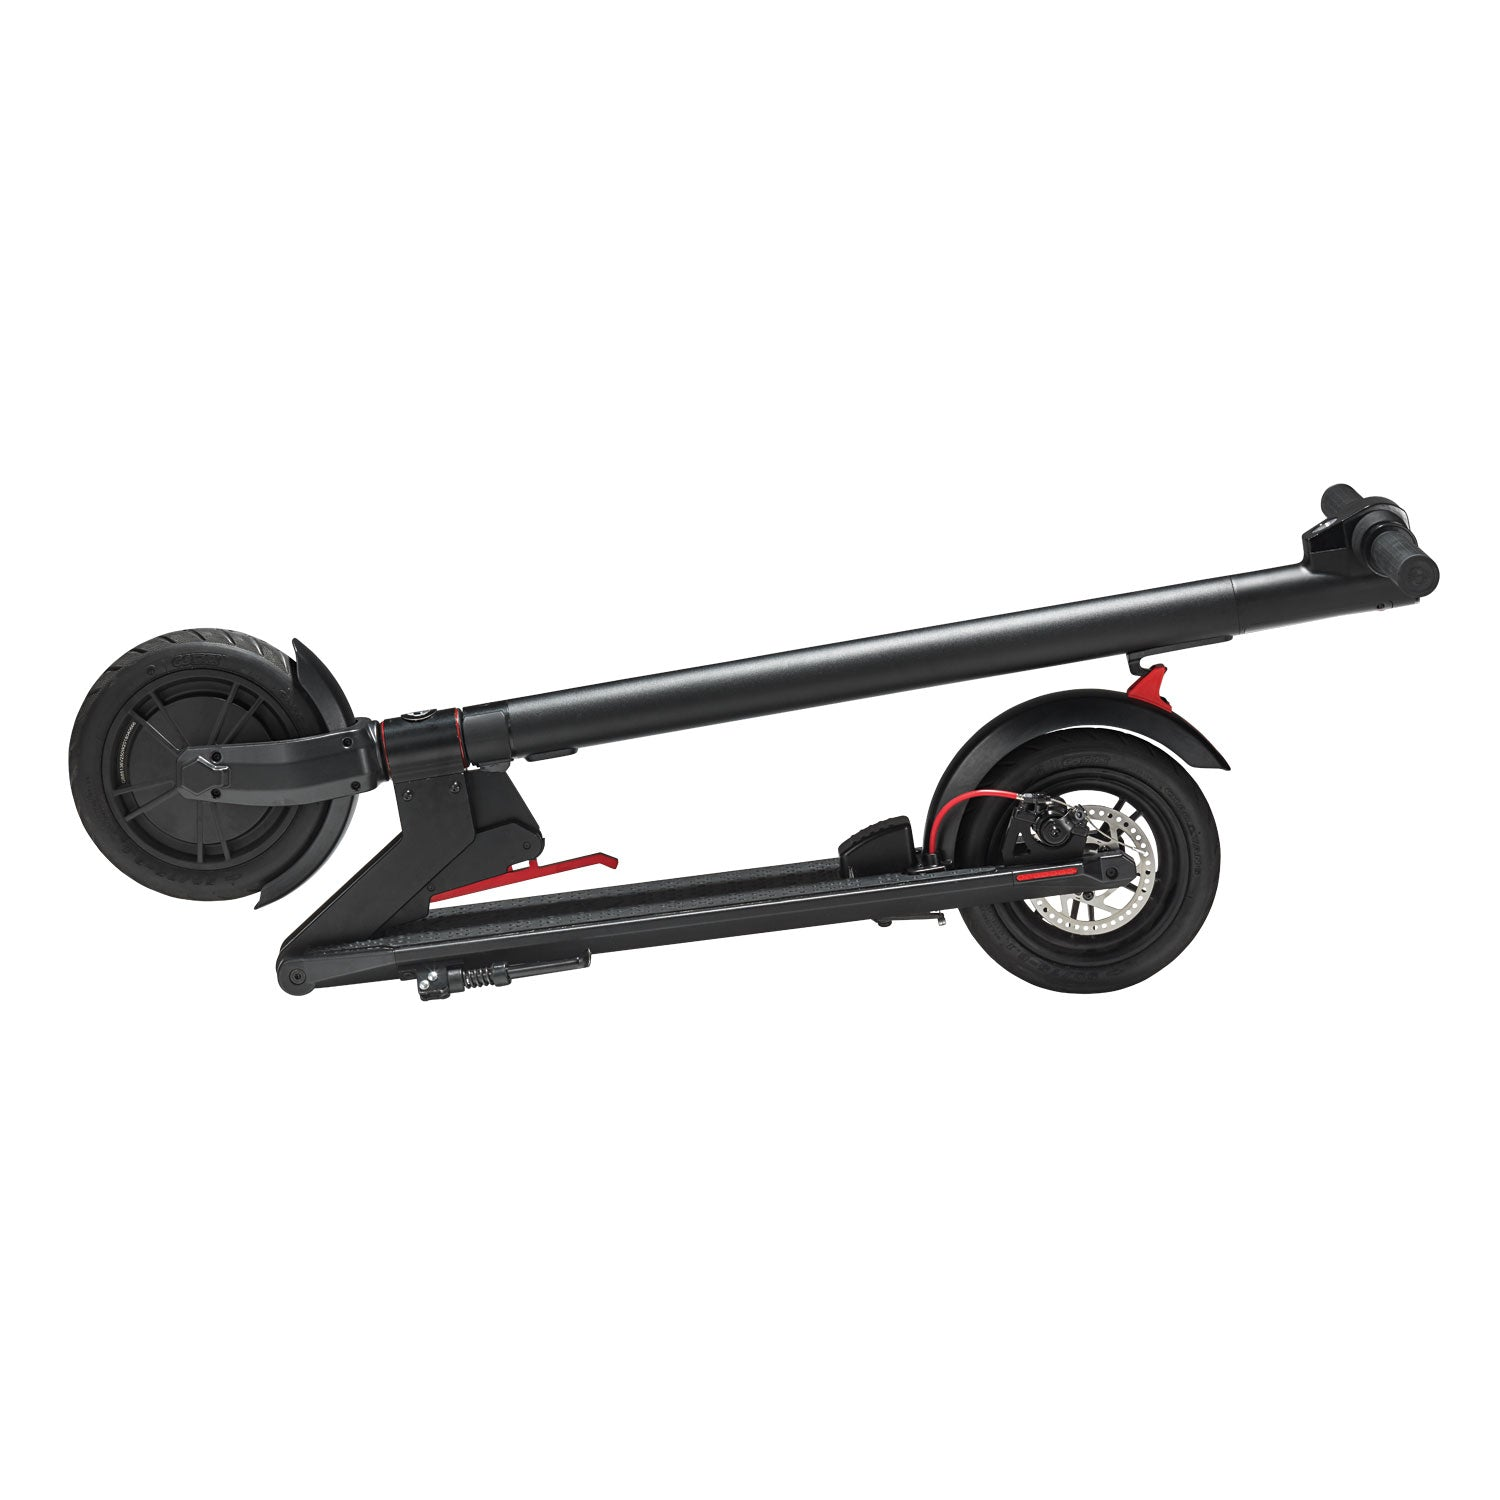 Folding Electric Scooter >> Gxl Folding Electric Scooter The Ultimate Commuting E Scooter Gotrax